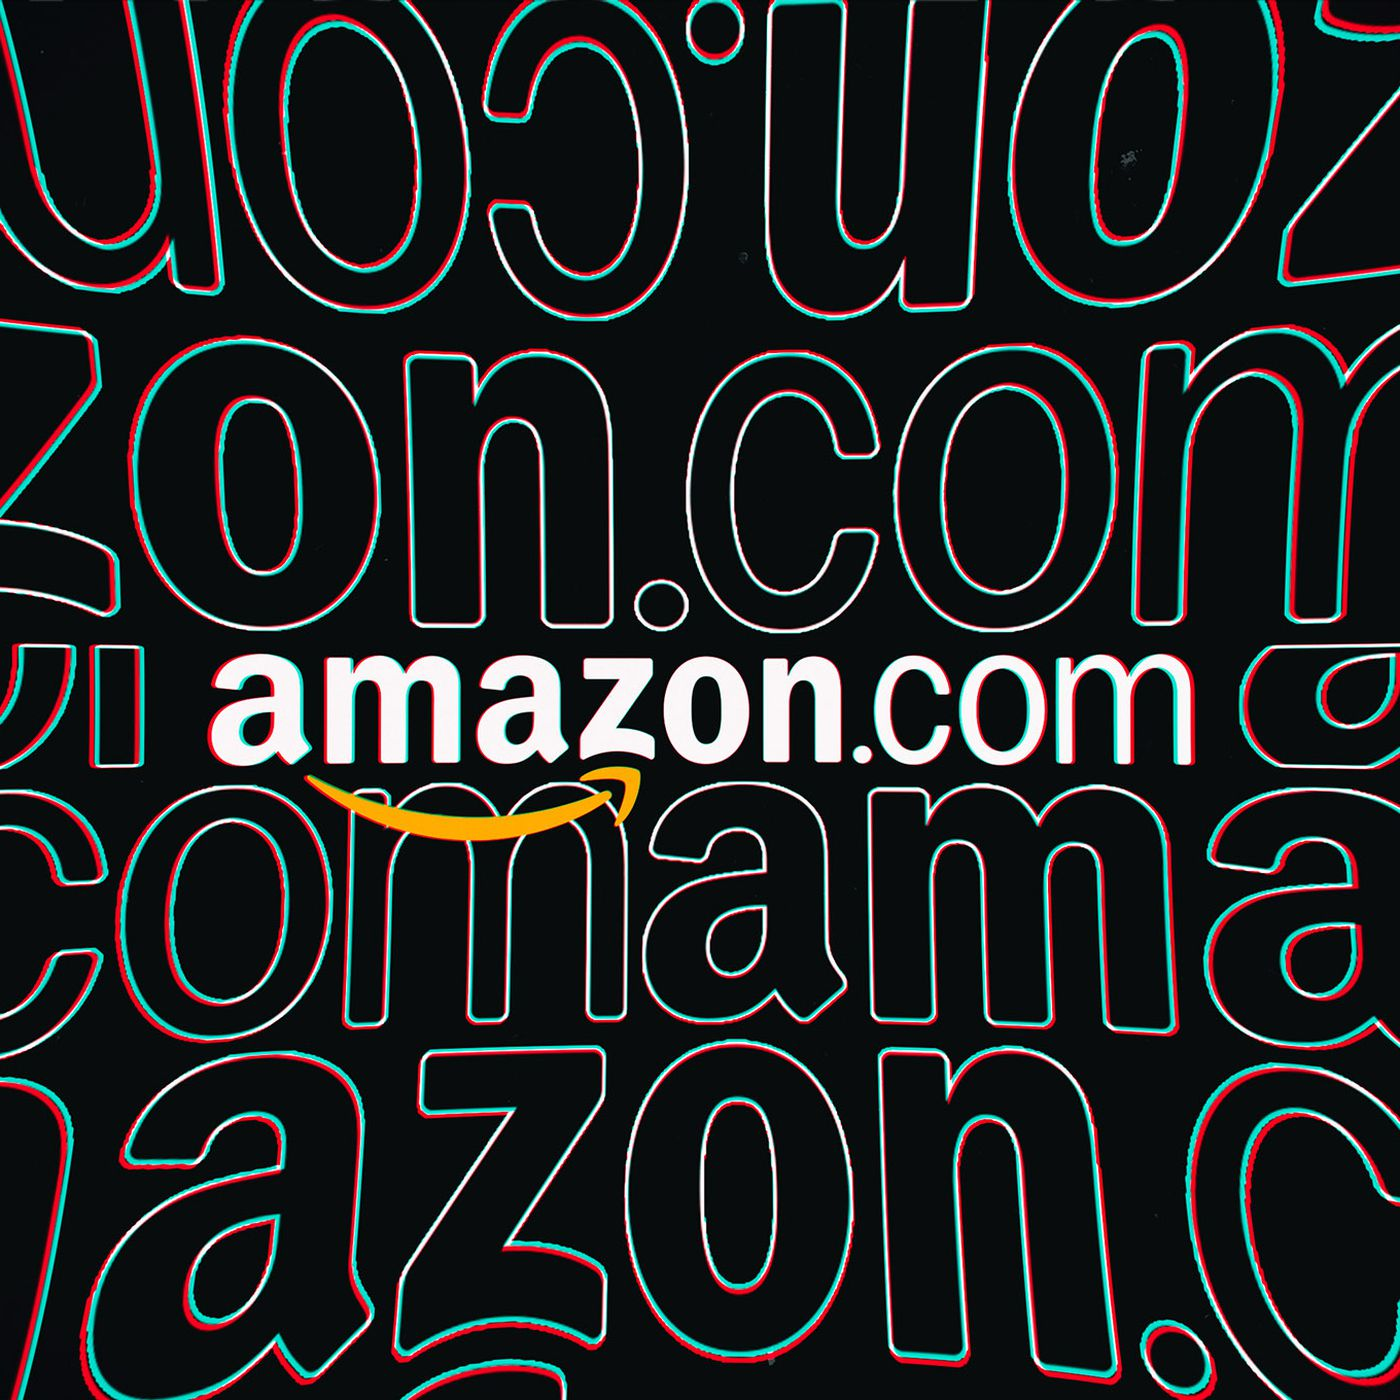 00b6b90725ff Amazon is making it easier for international customers to order from abroad